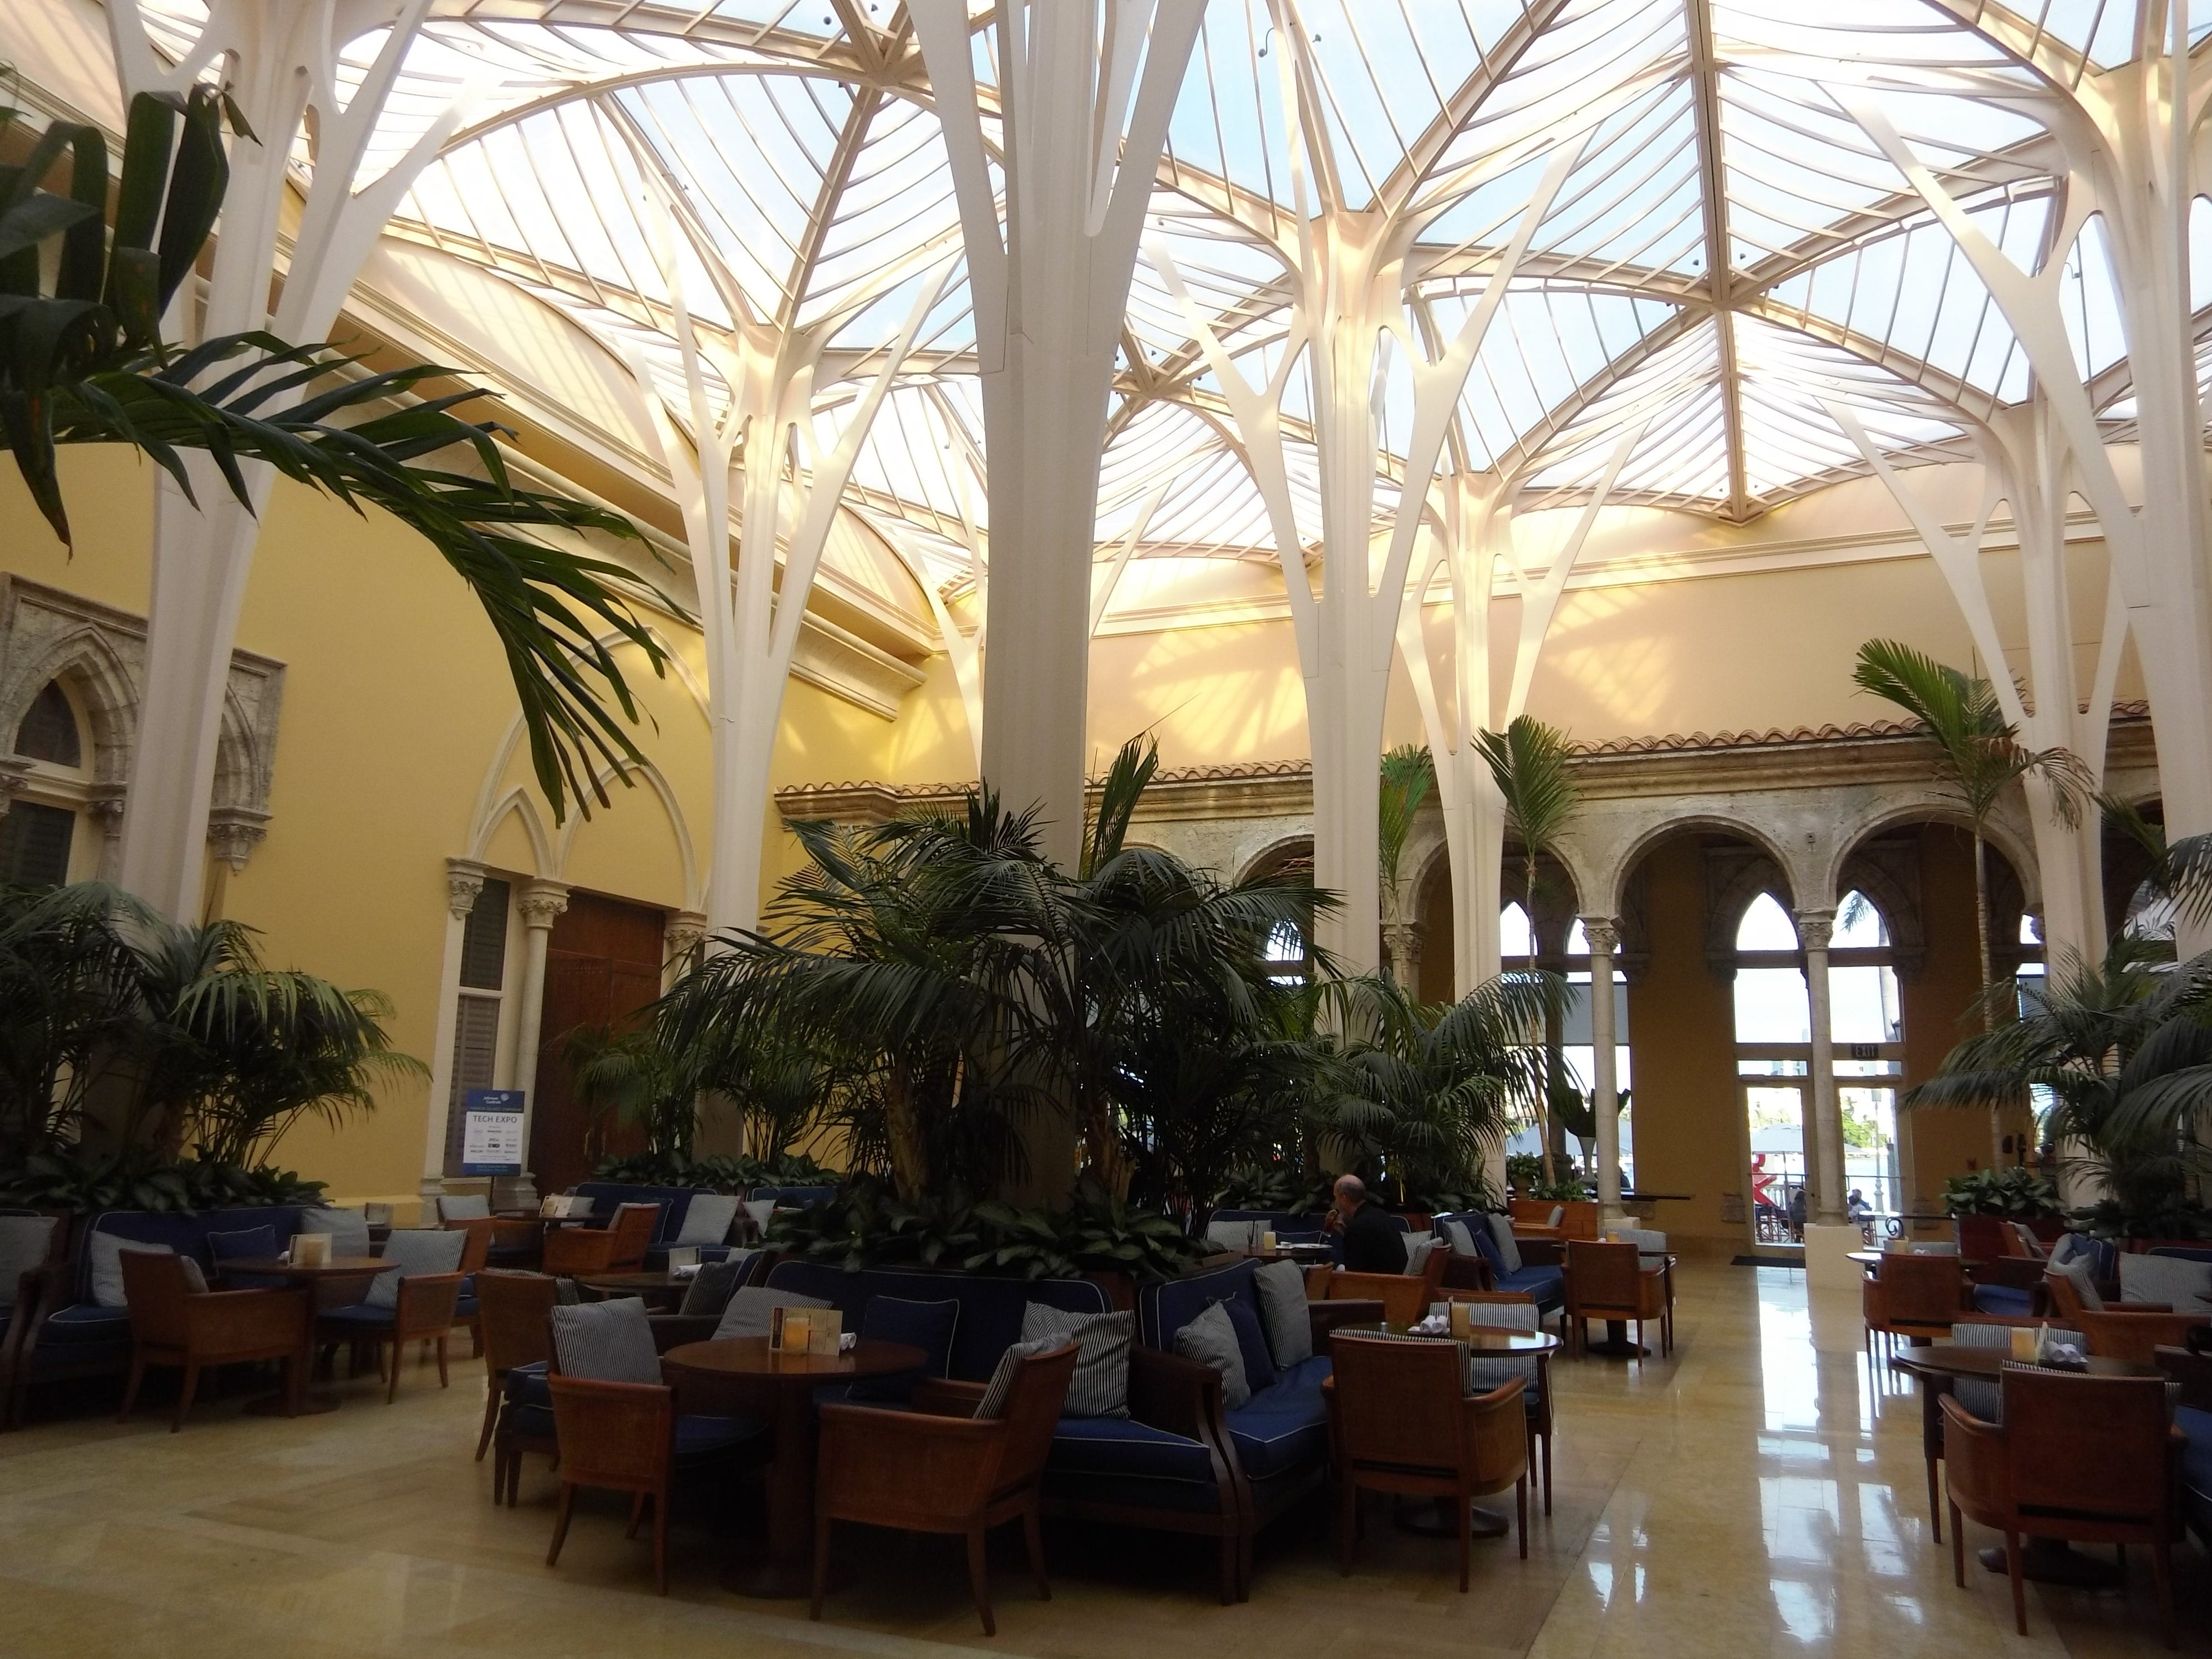 Breakfast is served in Palm Court.